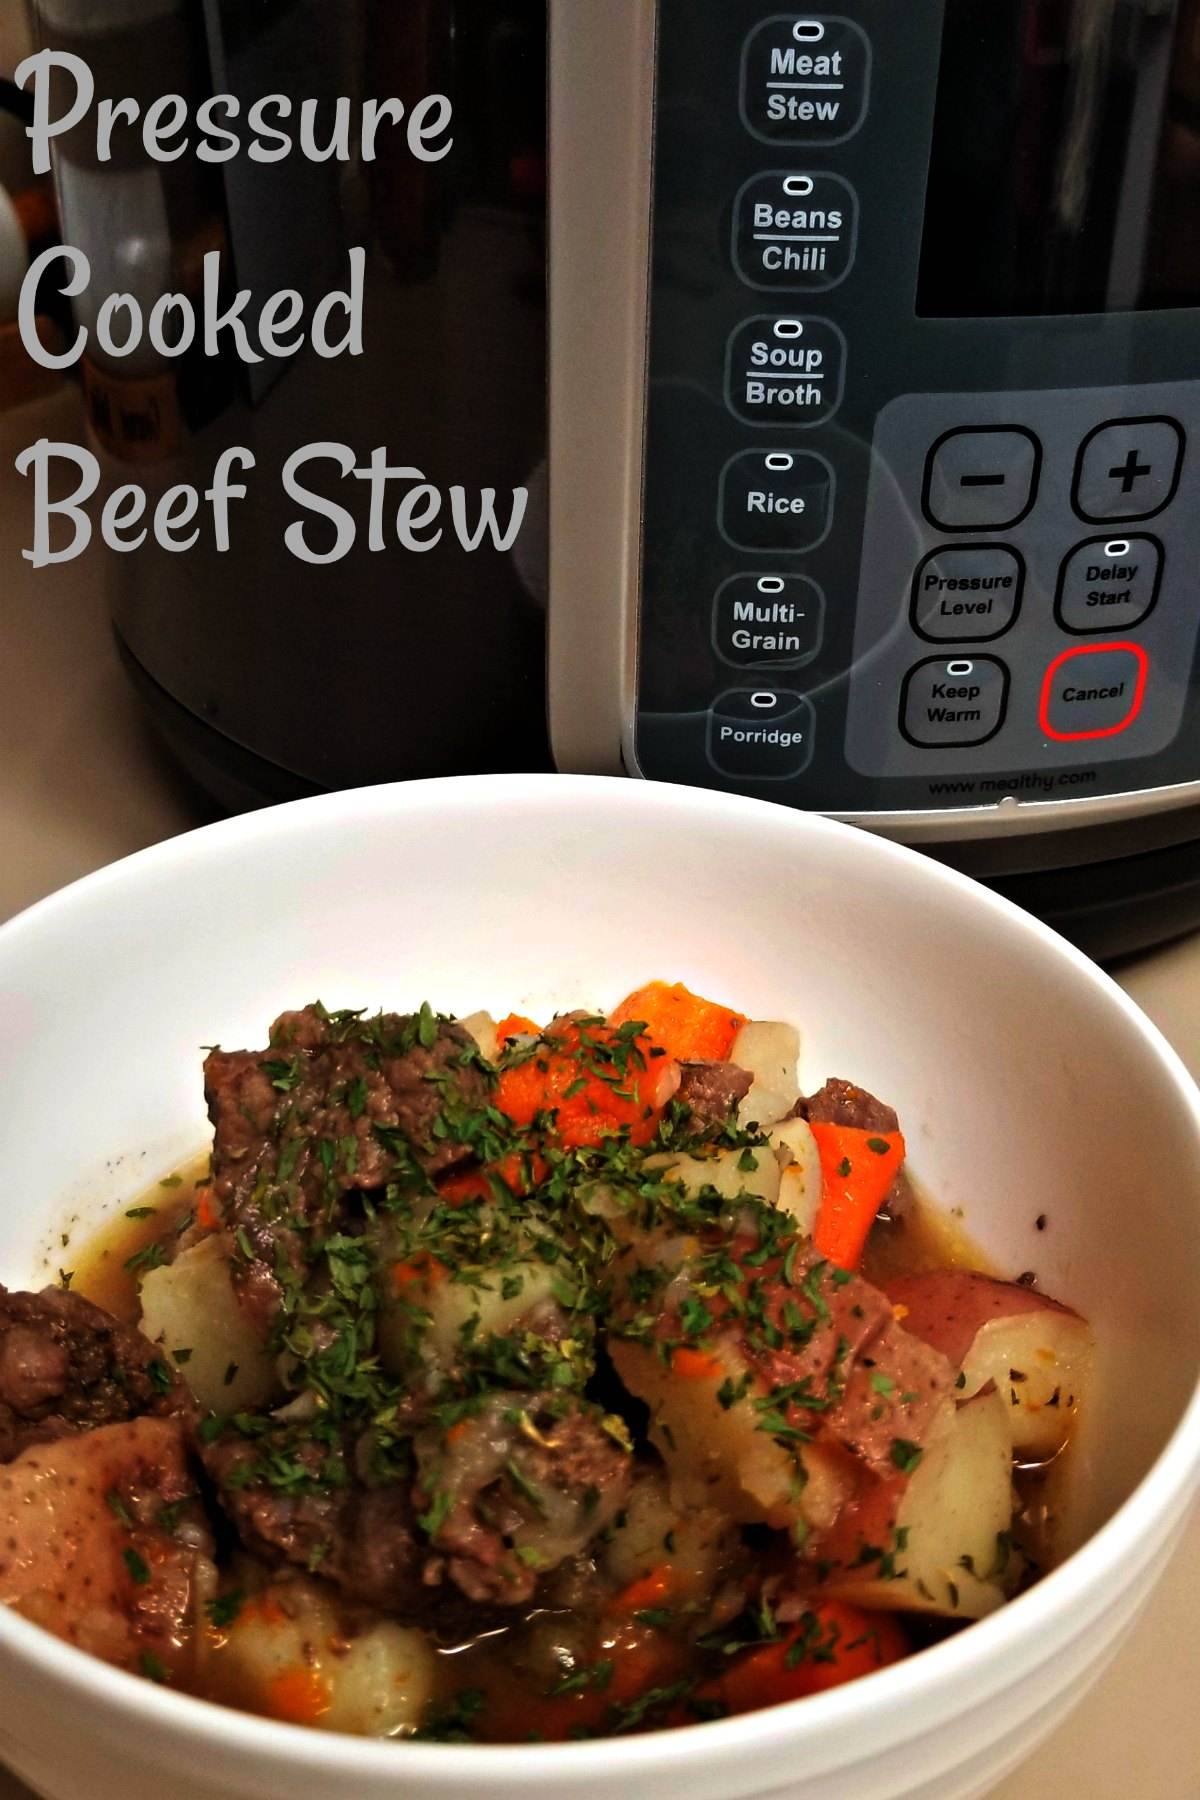 Pressure Cooked Beef Stew